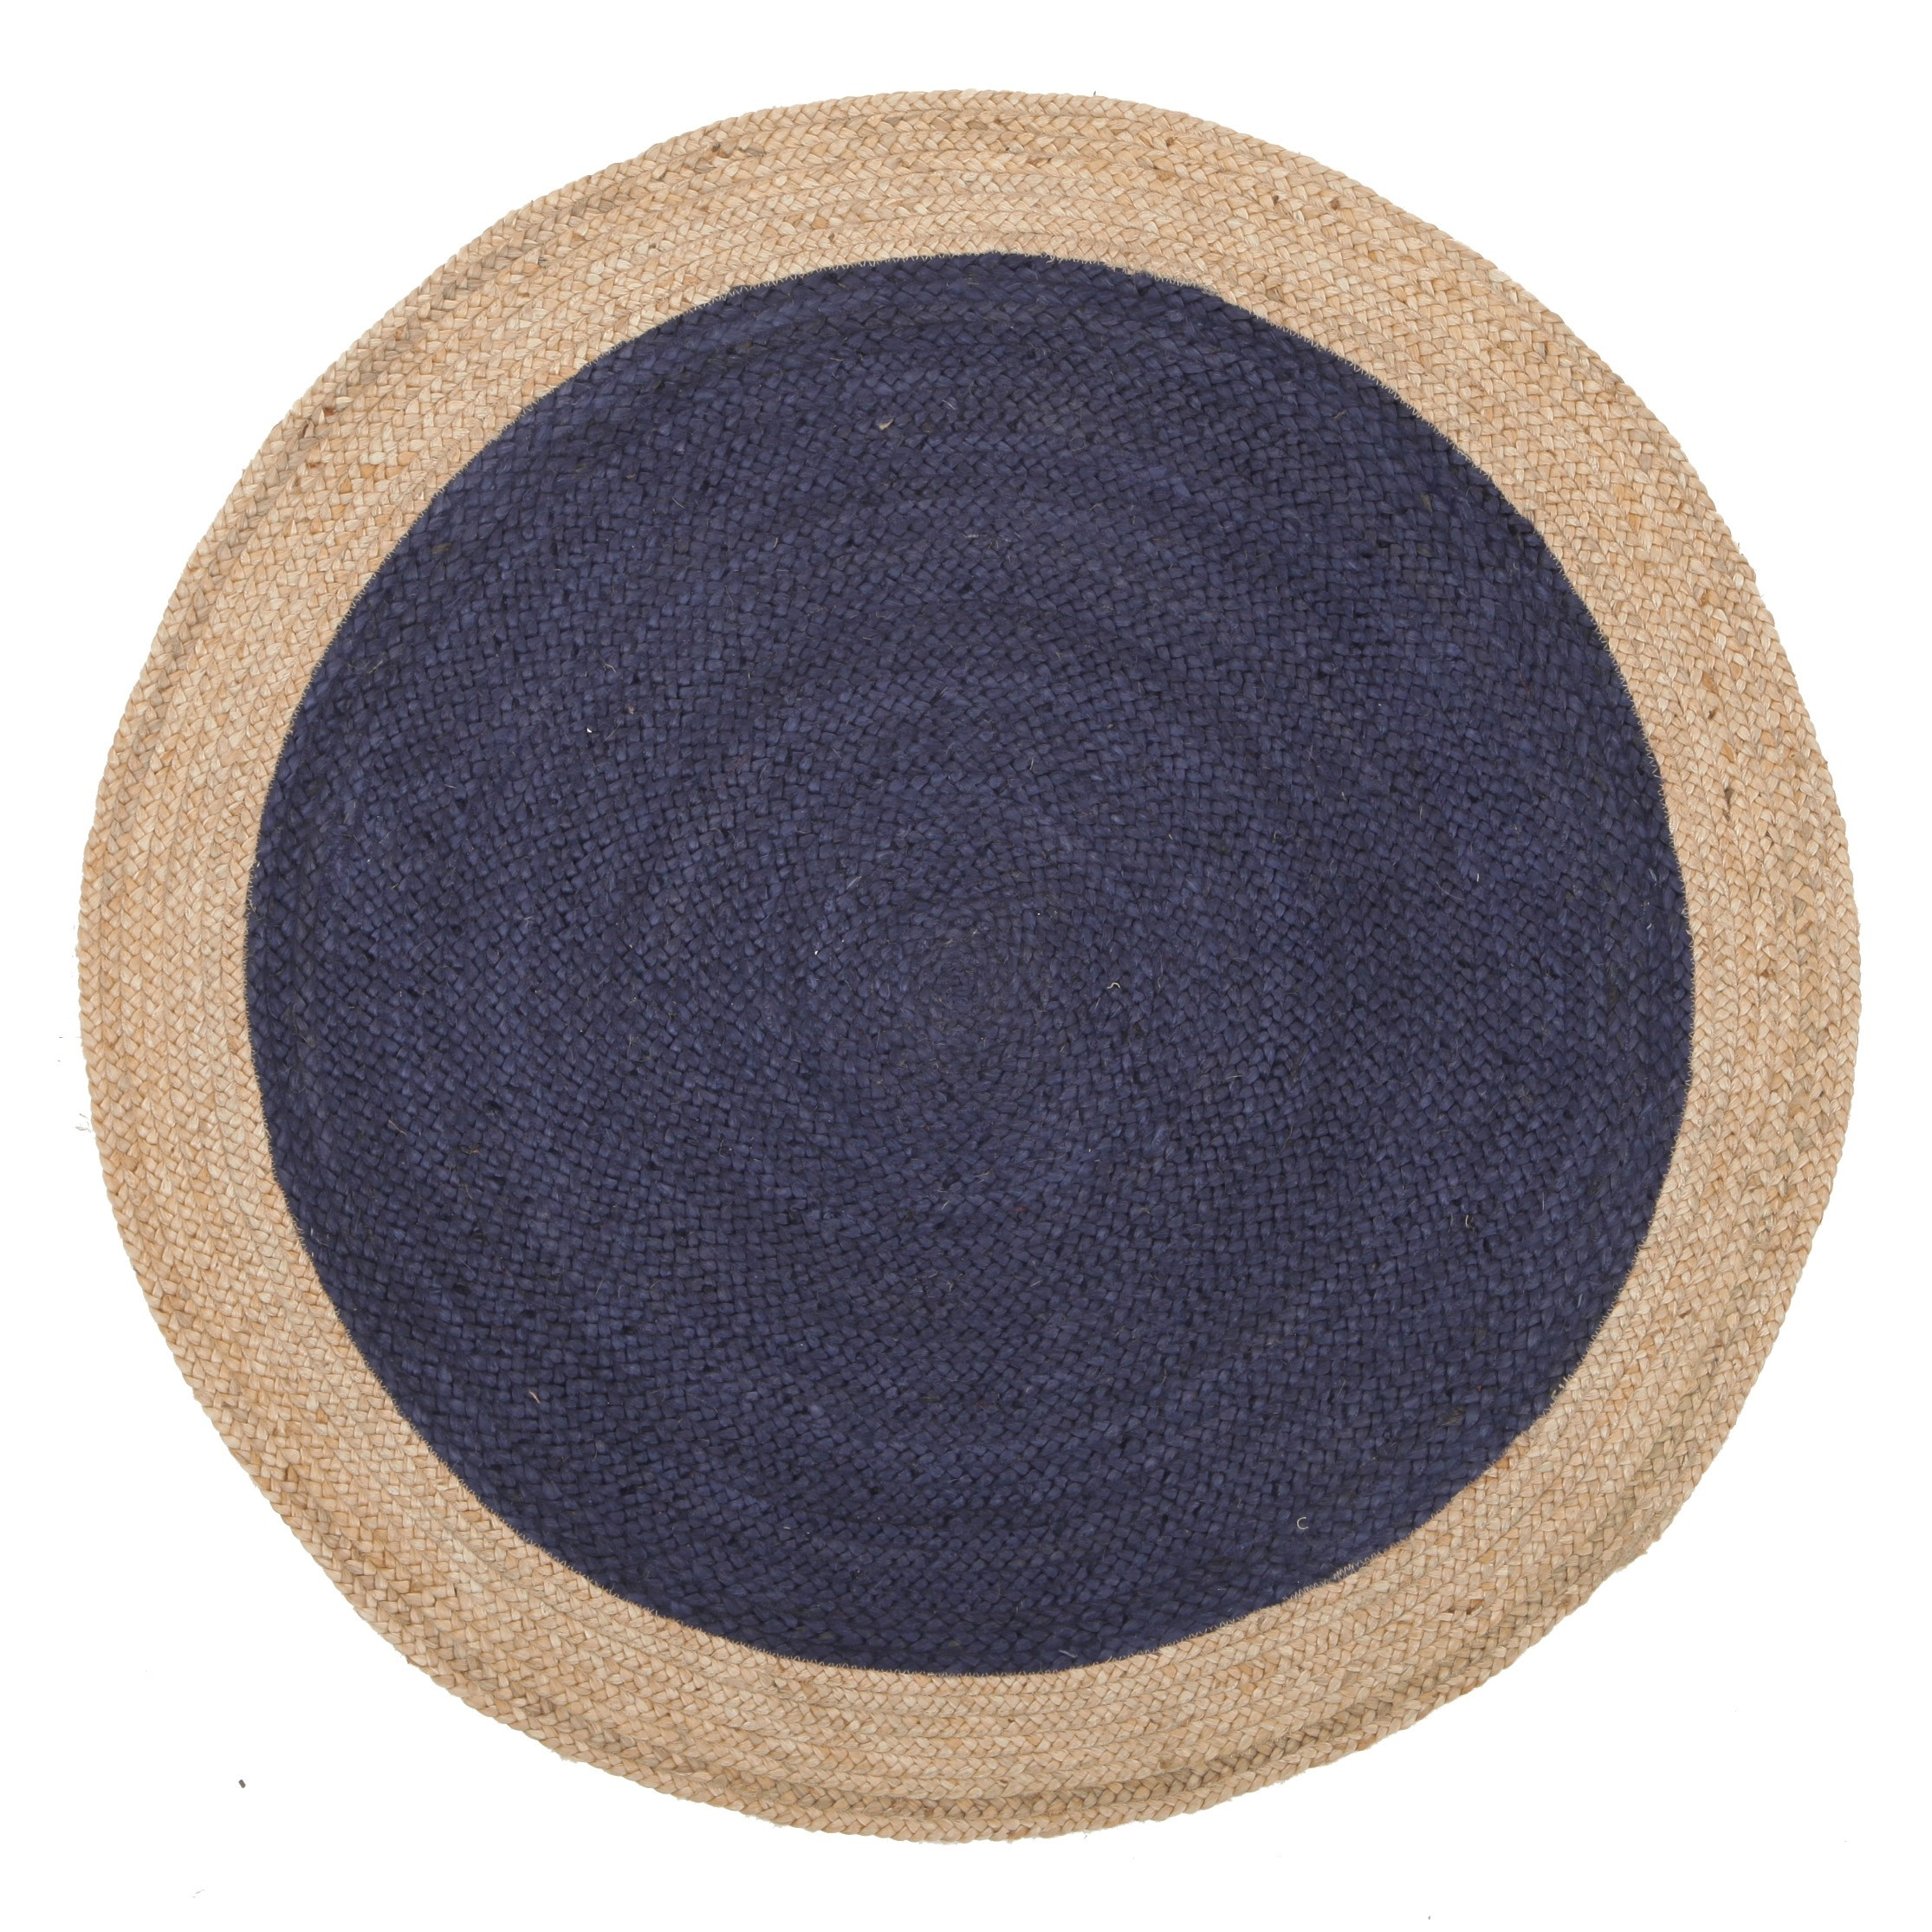 Kids Rugs Free Shipping Australia Wide Miss Amara Within Round Mats Rugs (Image 6 of 15)